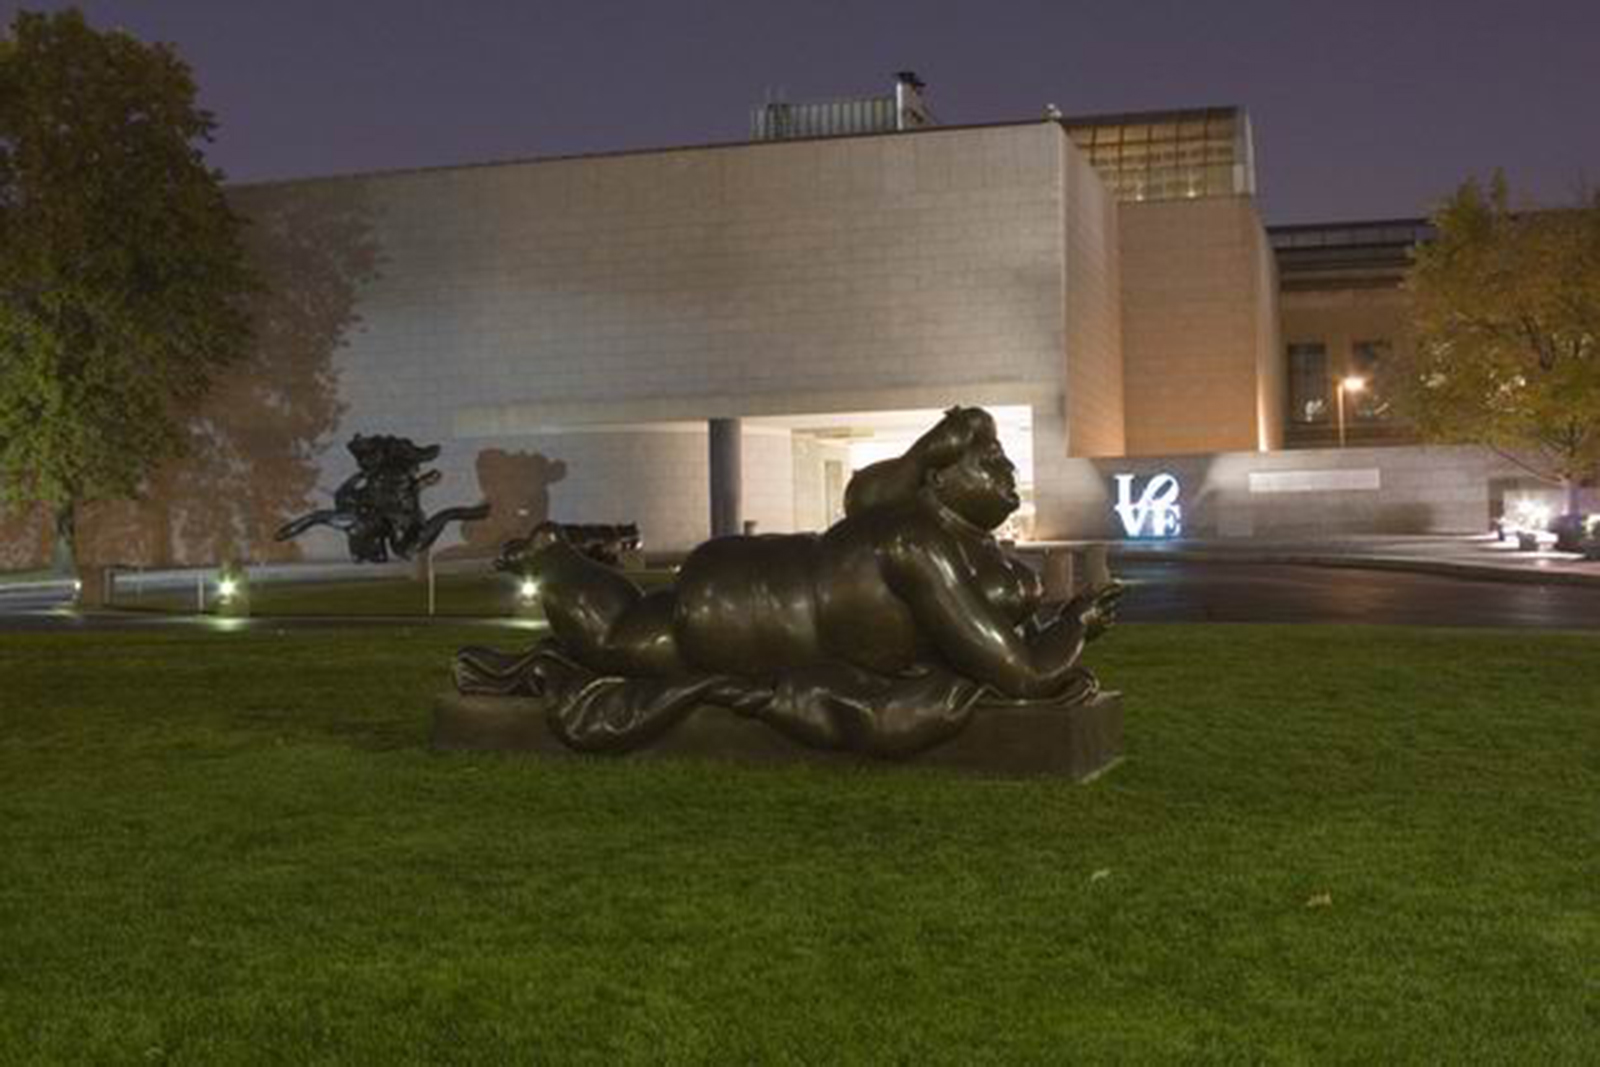 Lighting and Installation of Outdoor Sculptures. The collection includes yachts from the Americas Cup, Boteros, Picassos, antiquities, Native American Art and Artifacts, Western Artifacts, and Model Ships.